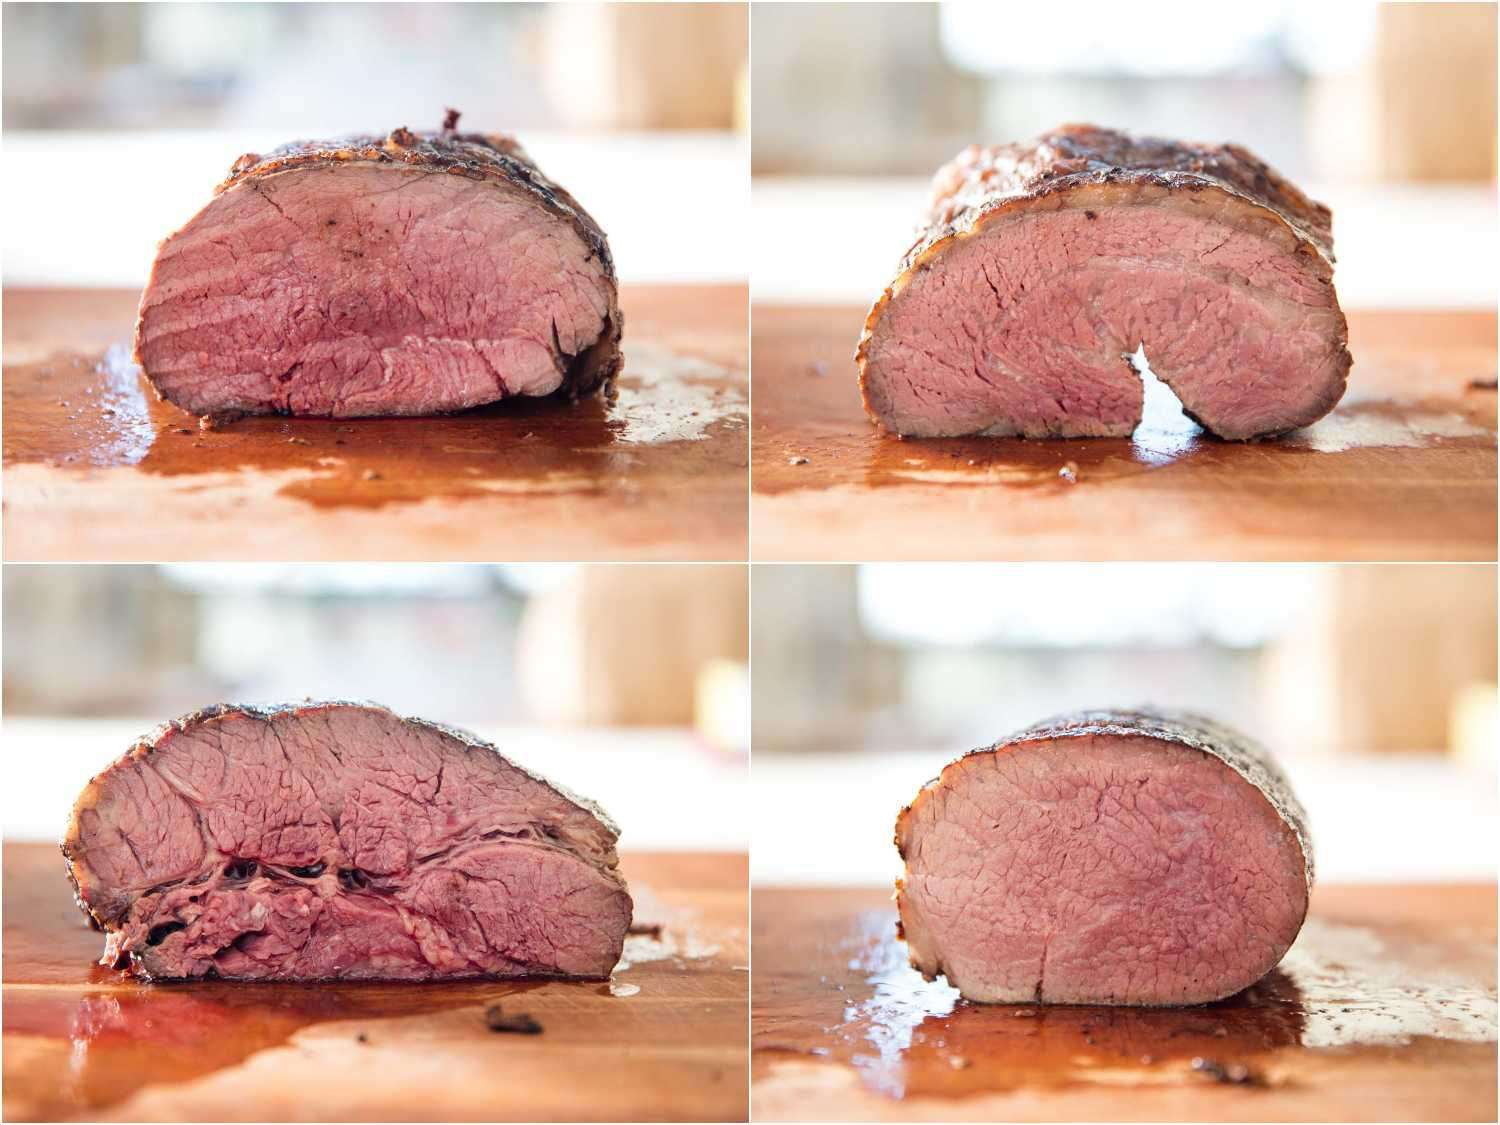 Cross-section interior shots of four different cuts of roast beef.